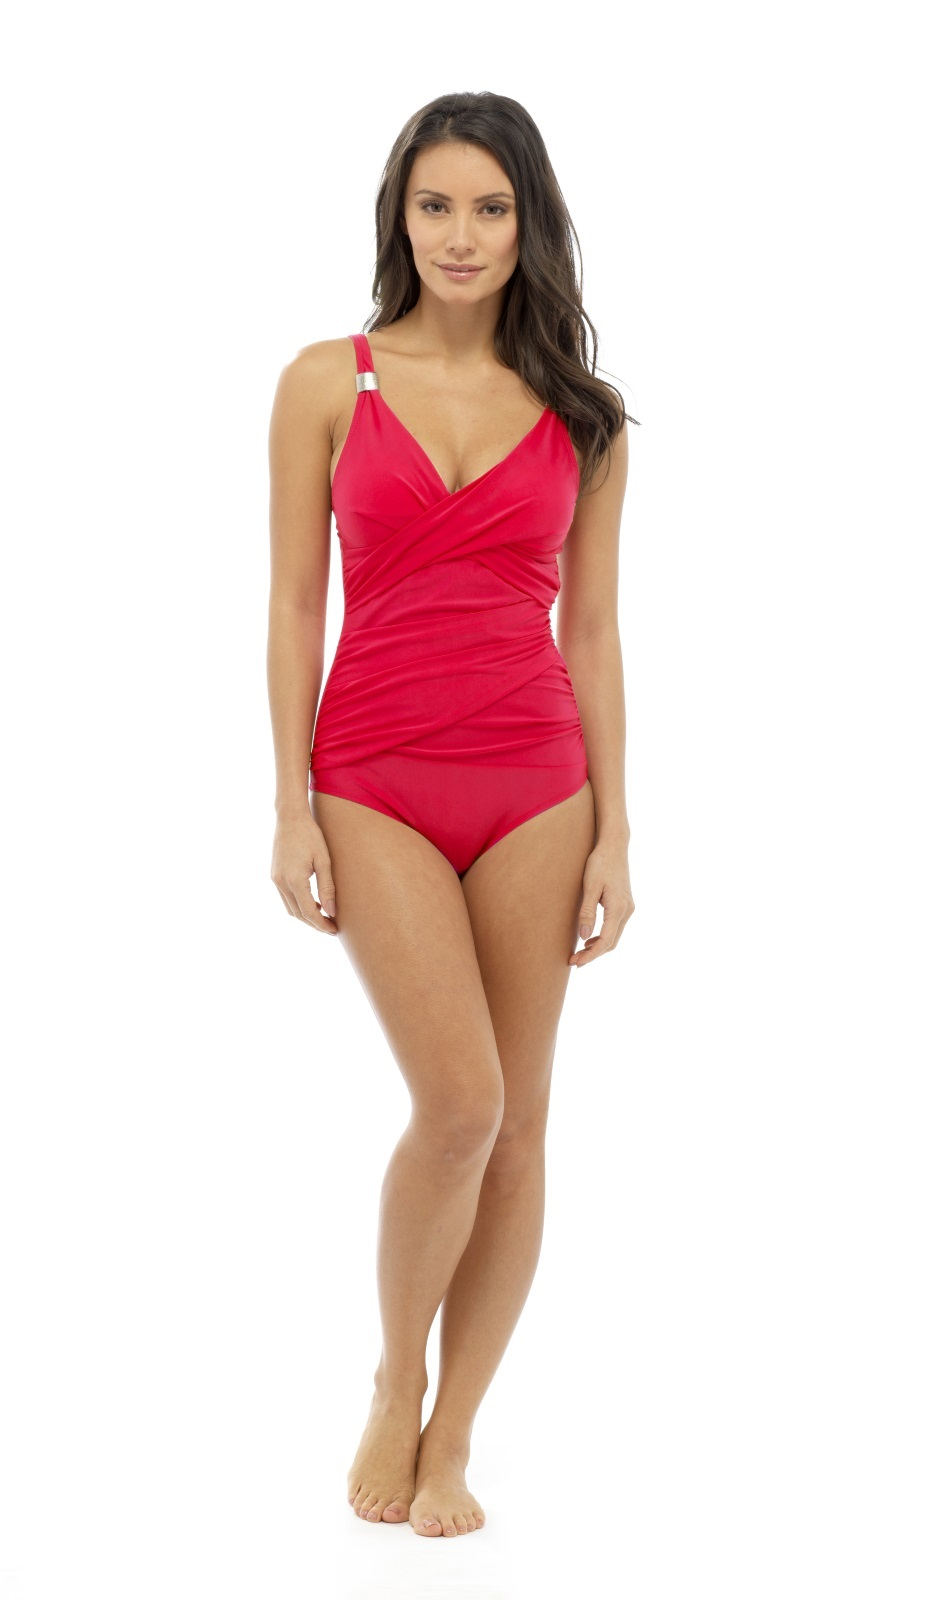 Red Swimming Costume Female Curly Red Hair Off Face Wearing Red